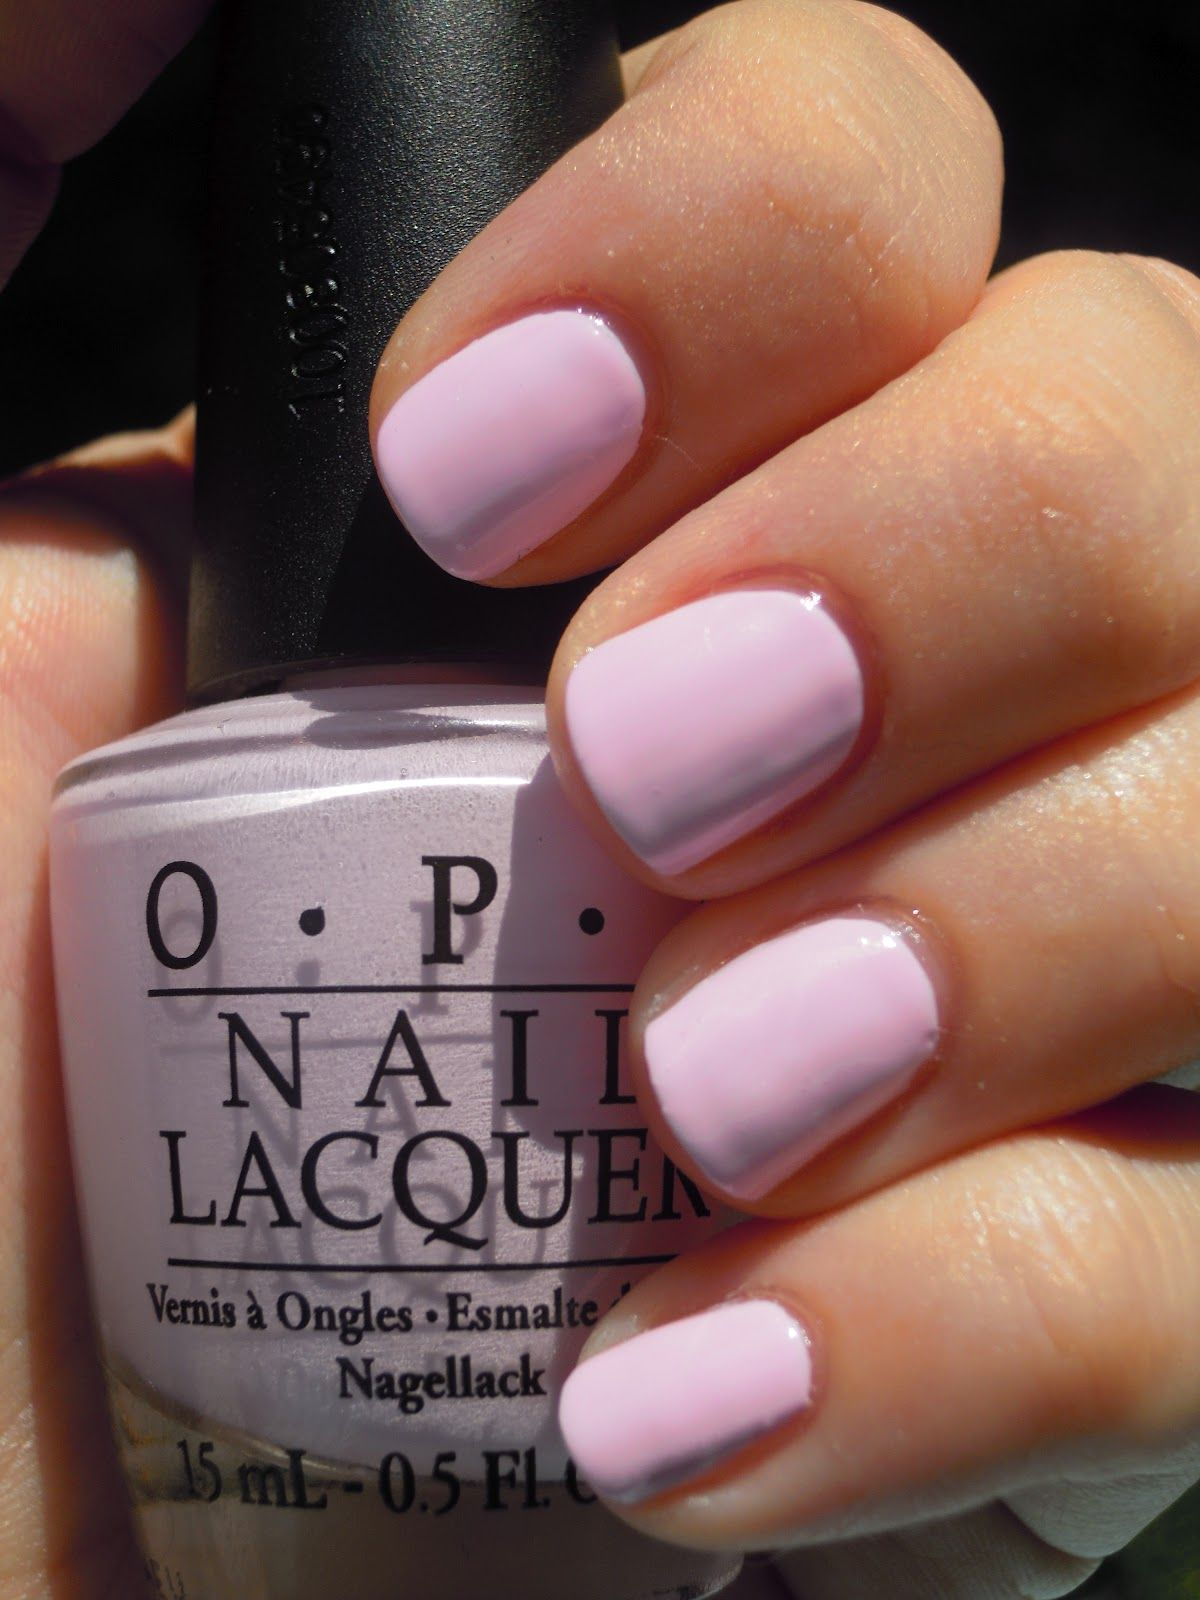 OPI Mod About You. Definitely wearing this color right now ...